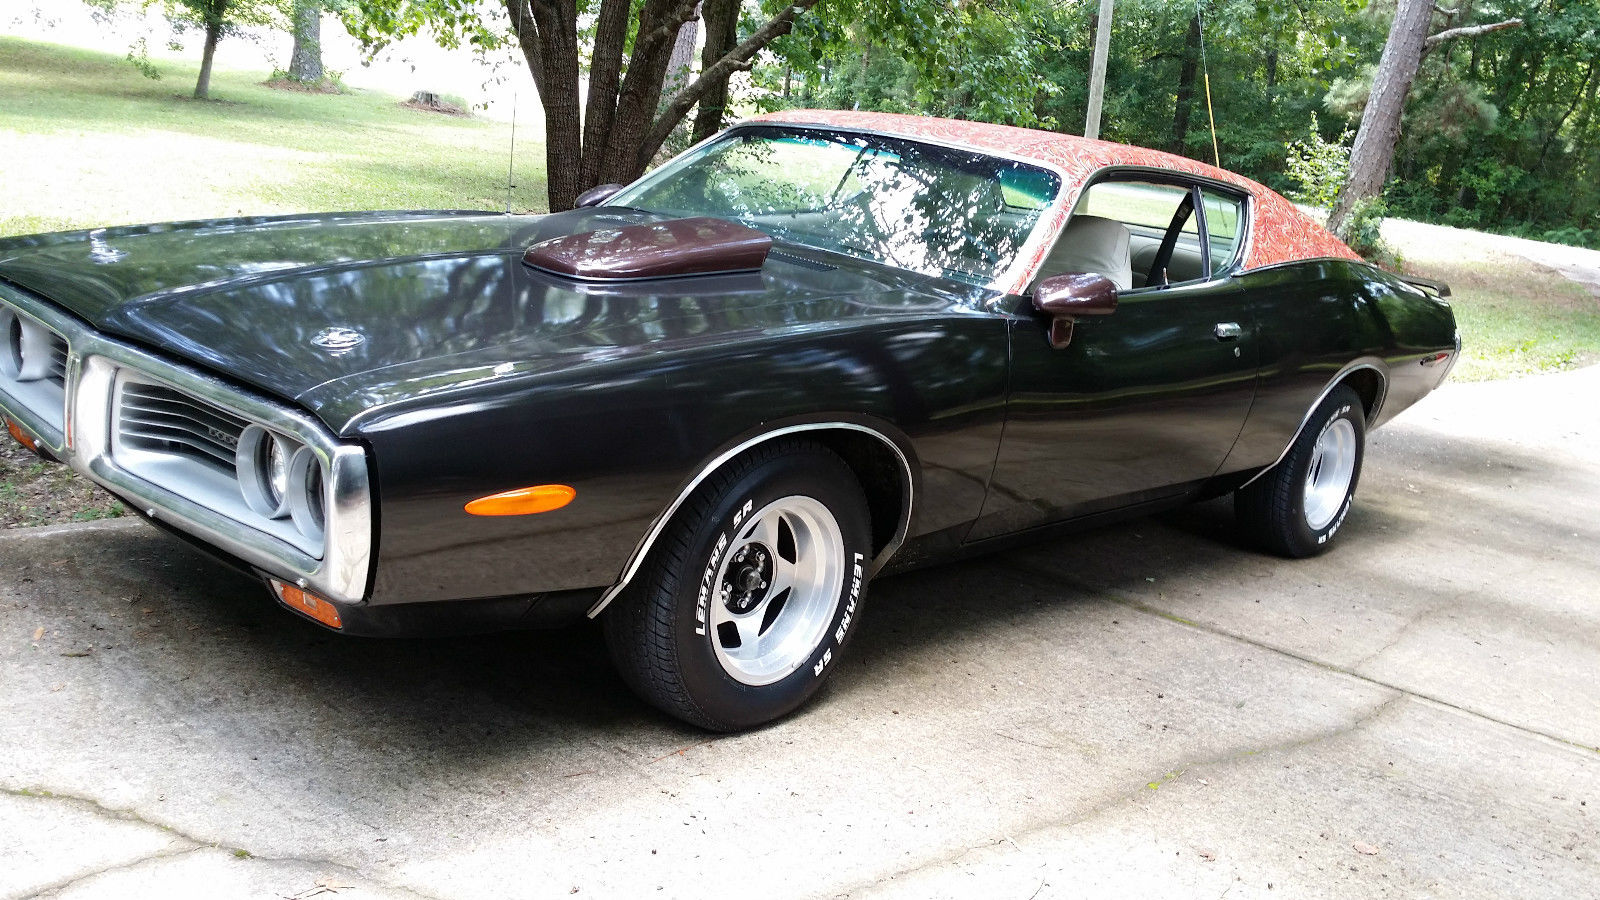 How To Sell A Car Without Title >> 1972 Dodge Charger 440 slap stick with mod top - Classic Dodge Charger 1972 for sale